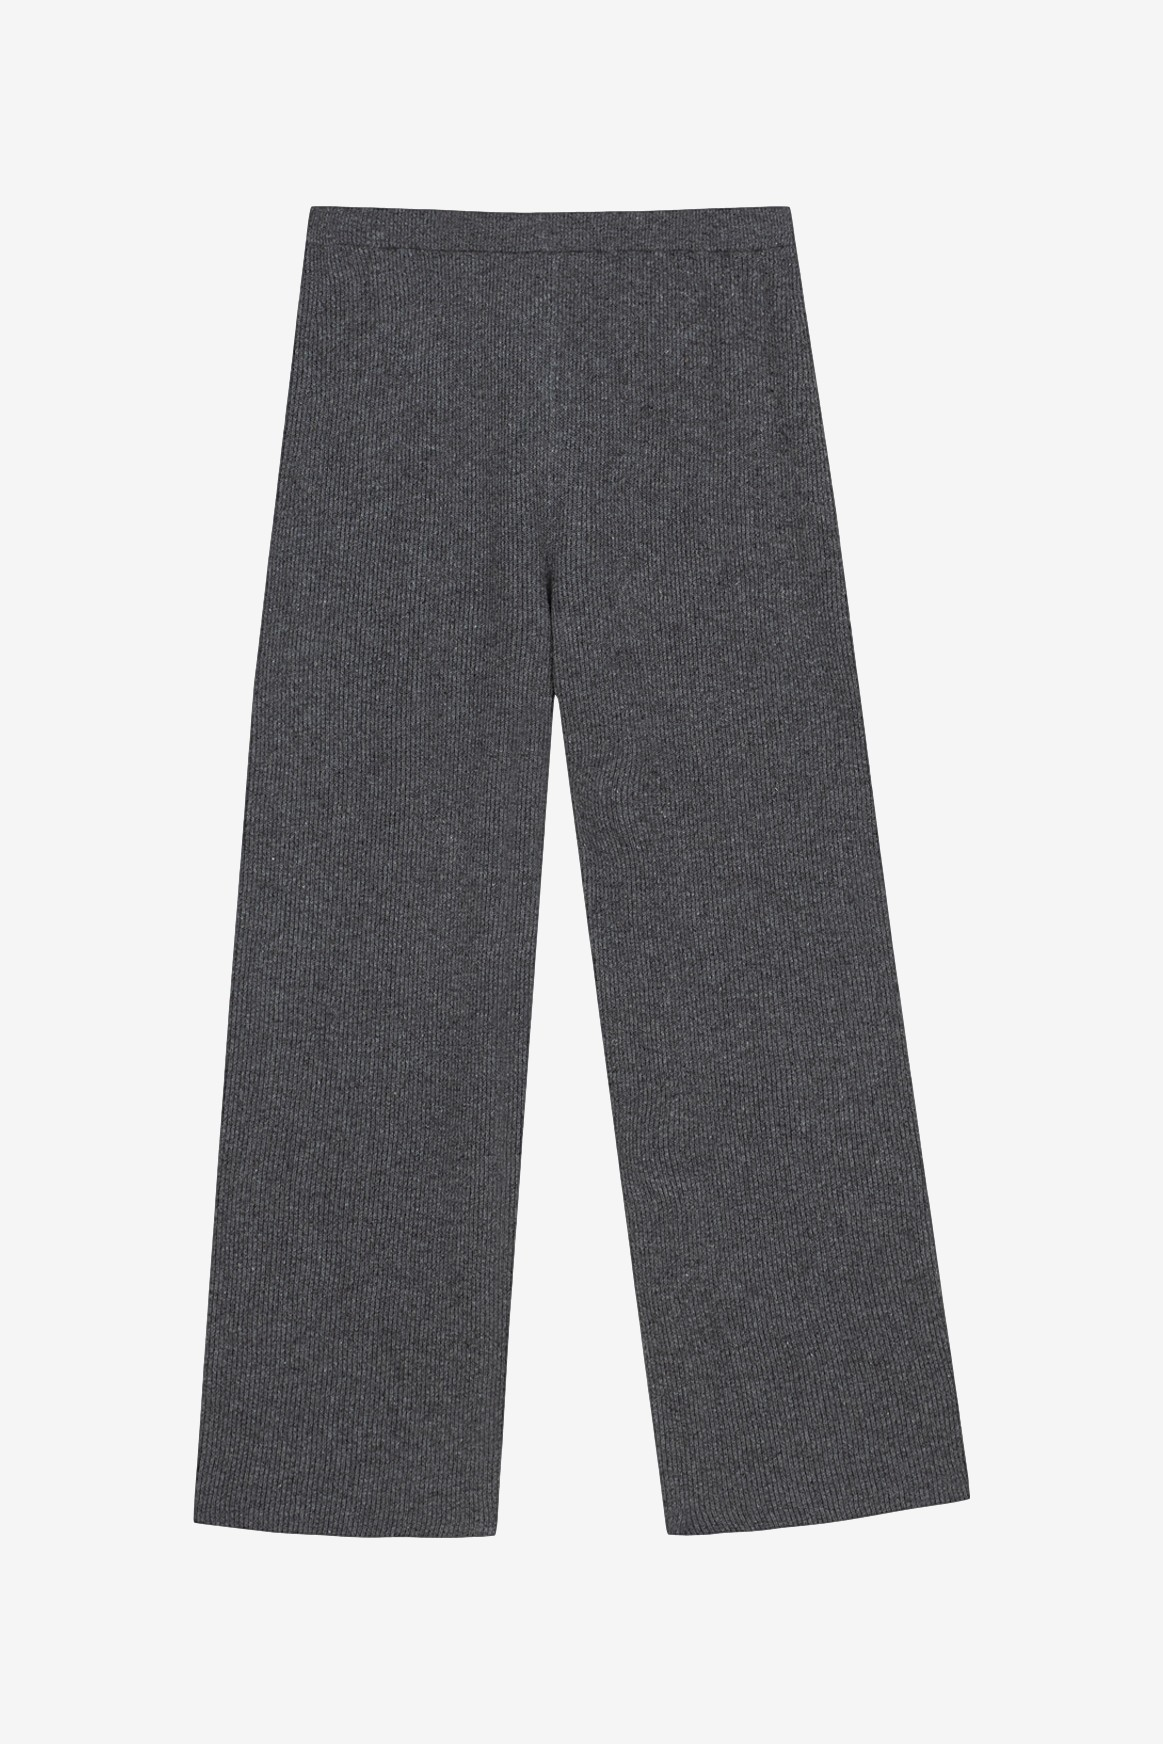 Nanushka Keira Knit Pants in Graphite